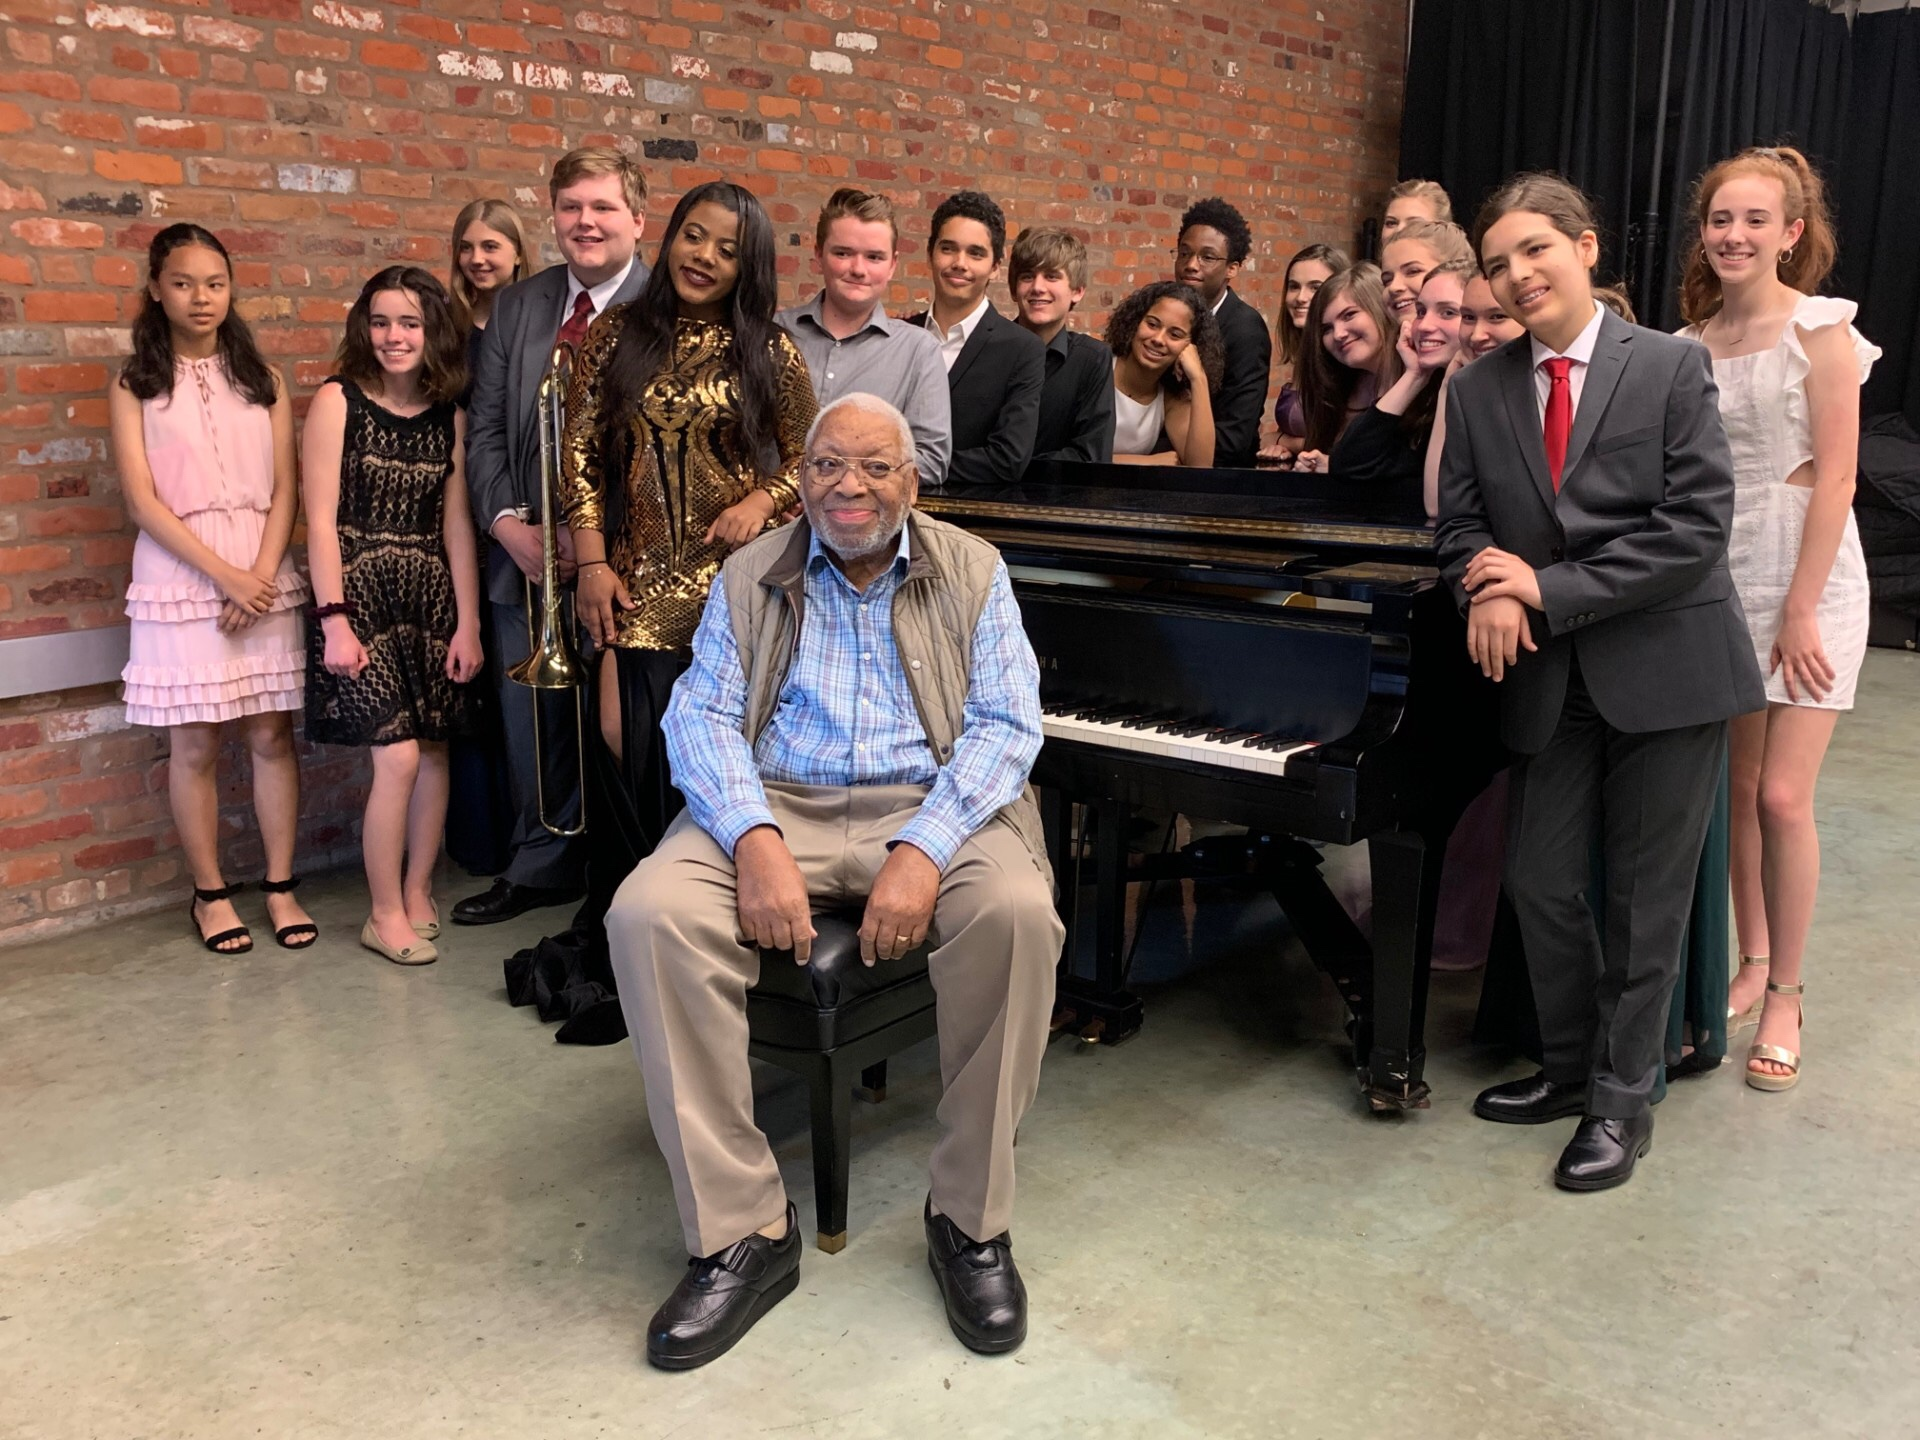 Ellis Marsalis, one of NOCCA's founding fathers, has died